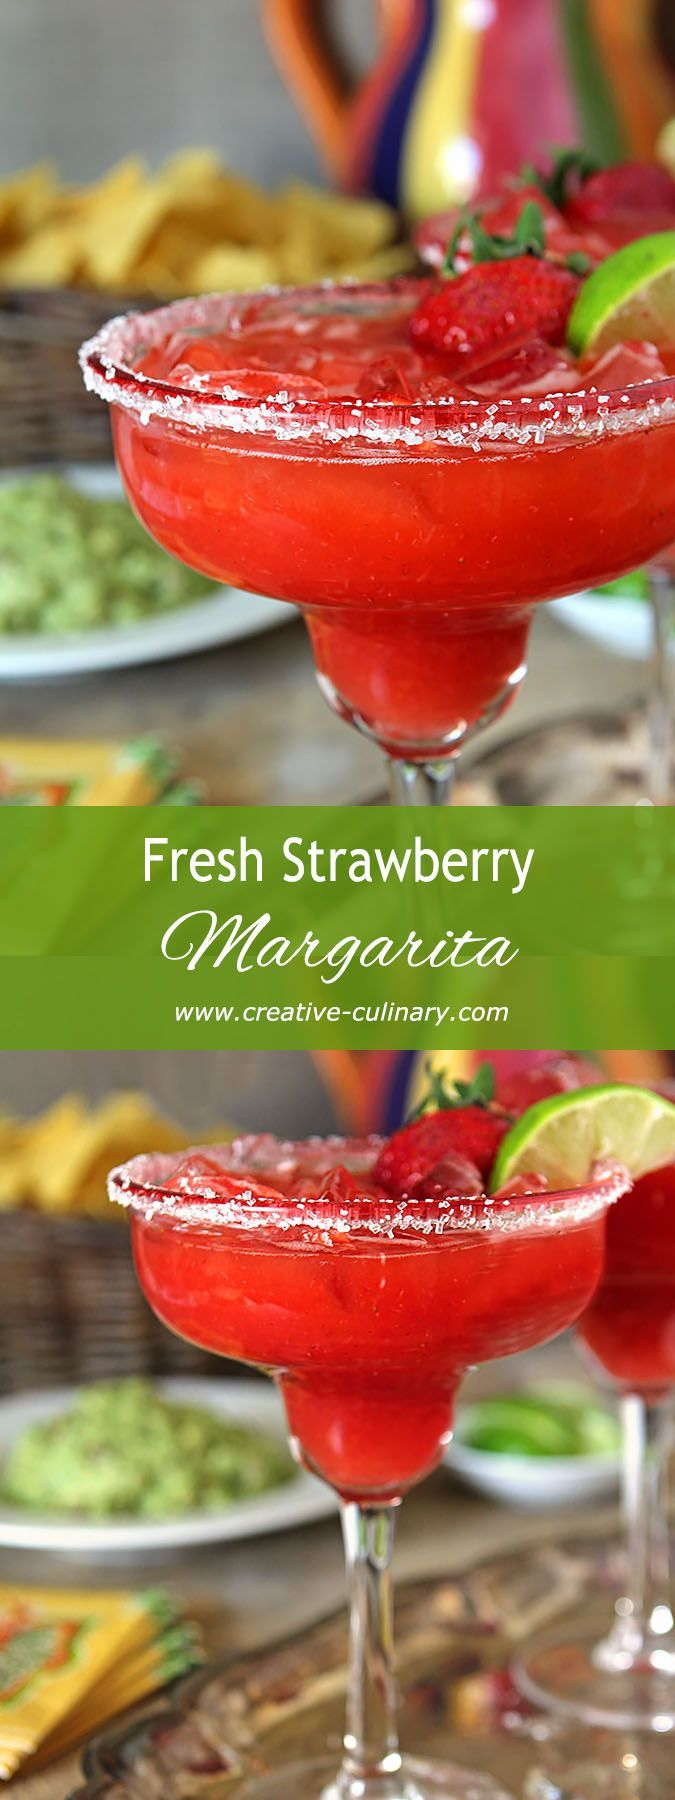 how to make the best strawberry margarita on the rocks